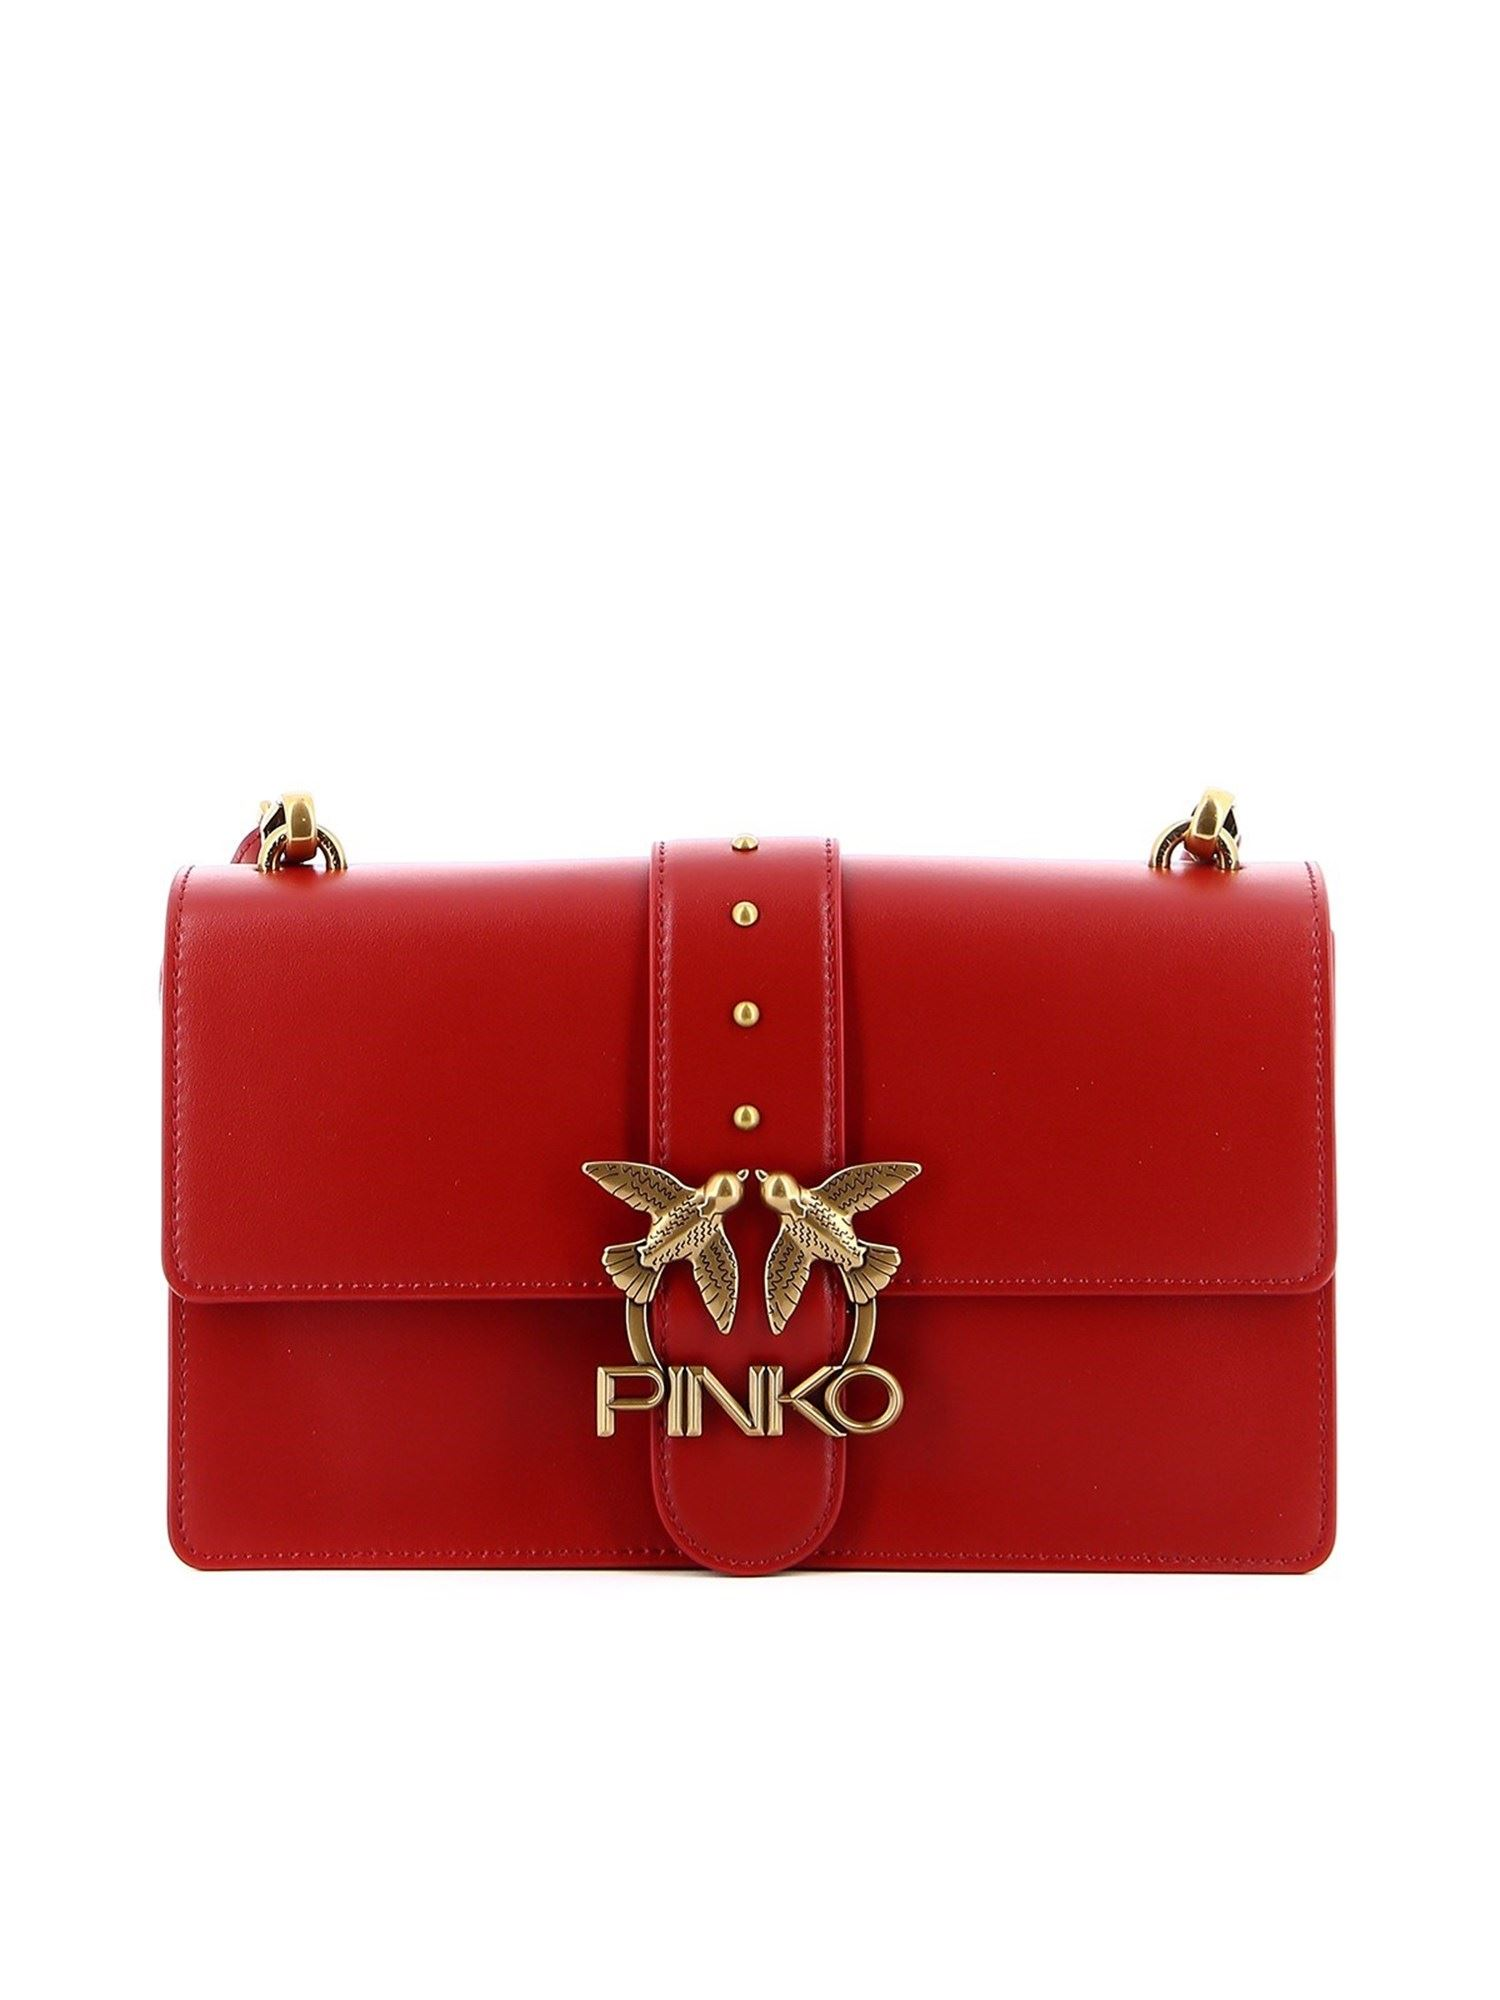 Pinko PINKO CLASSIC LOVE ICON SIMPLY BAG IN RED